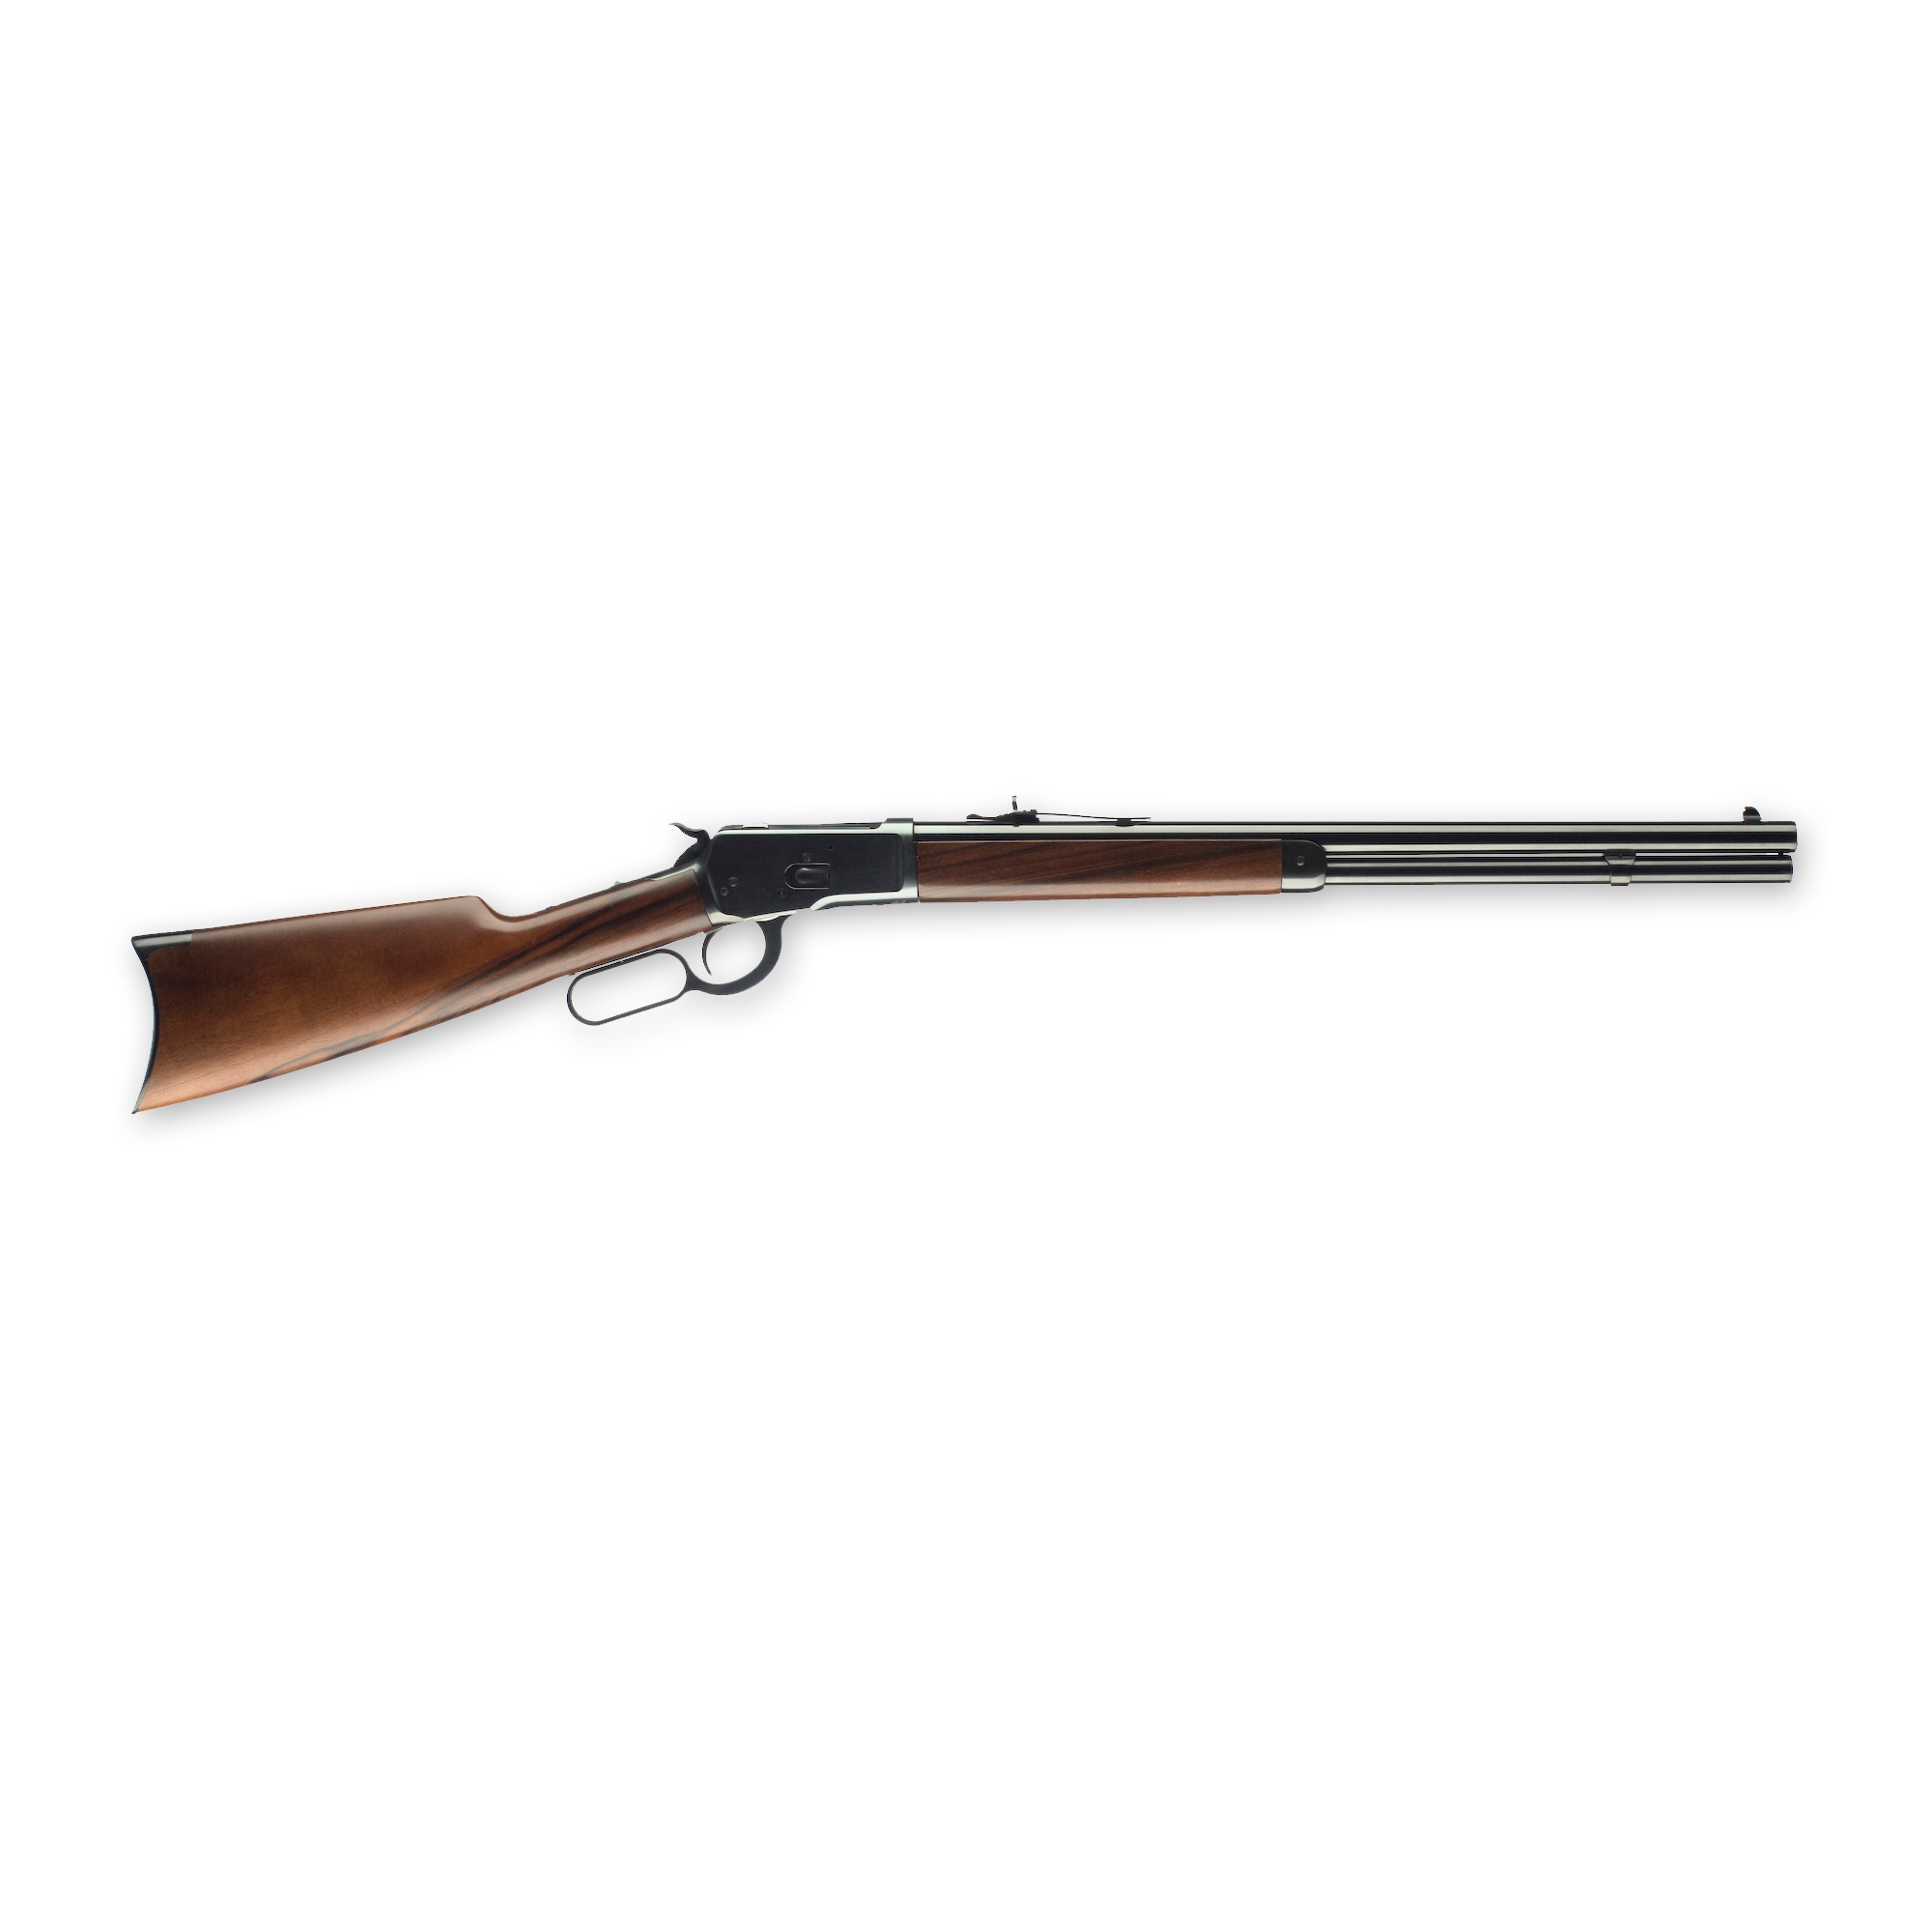 """The Model 92 is famous for its light weight"""" low recoil and responsive"""" easy handling. It displays a genius of design that makes it a modern-day treasure. The Winchester Model 1892 features a beautifully finished walnut stock"""" blued barrel and receiver"""" finely fit with precision and pride."""